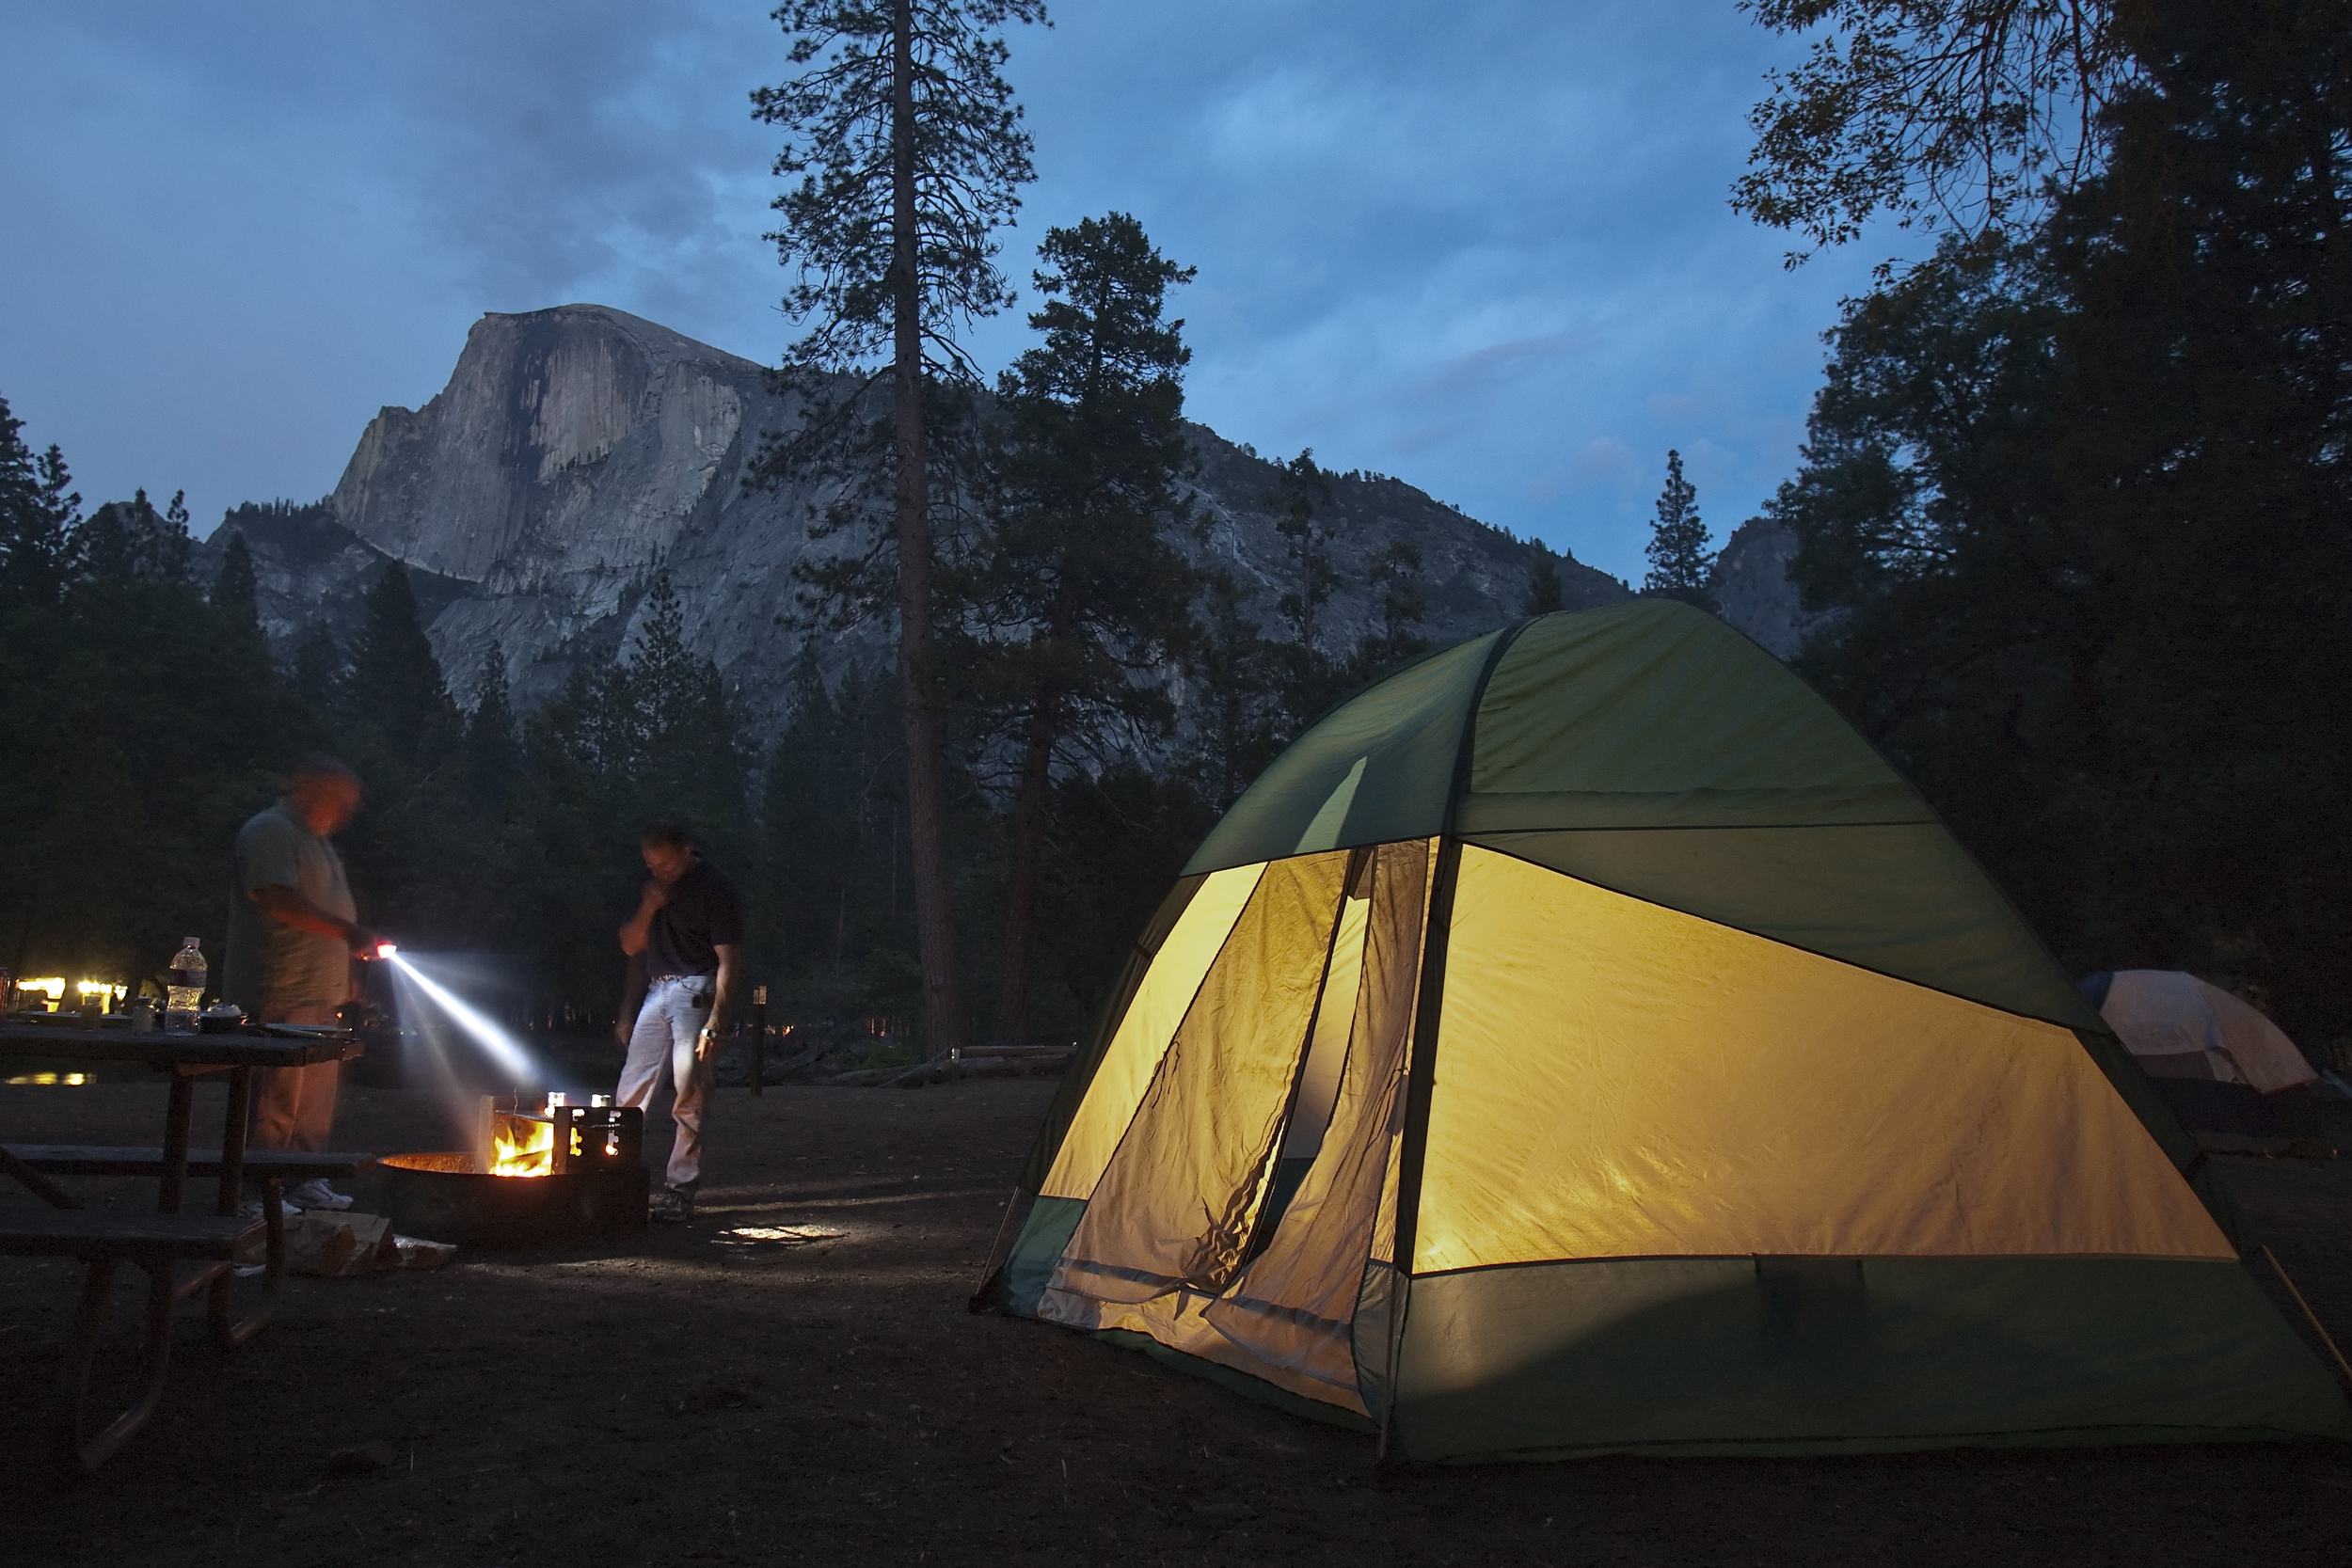 Camp site with a view, Half Dome - Yosemite National Park